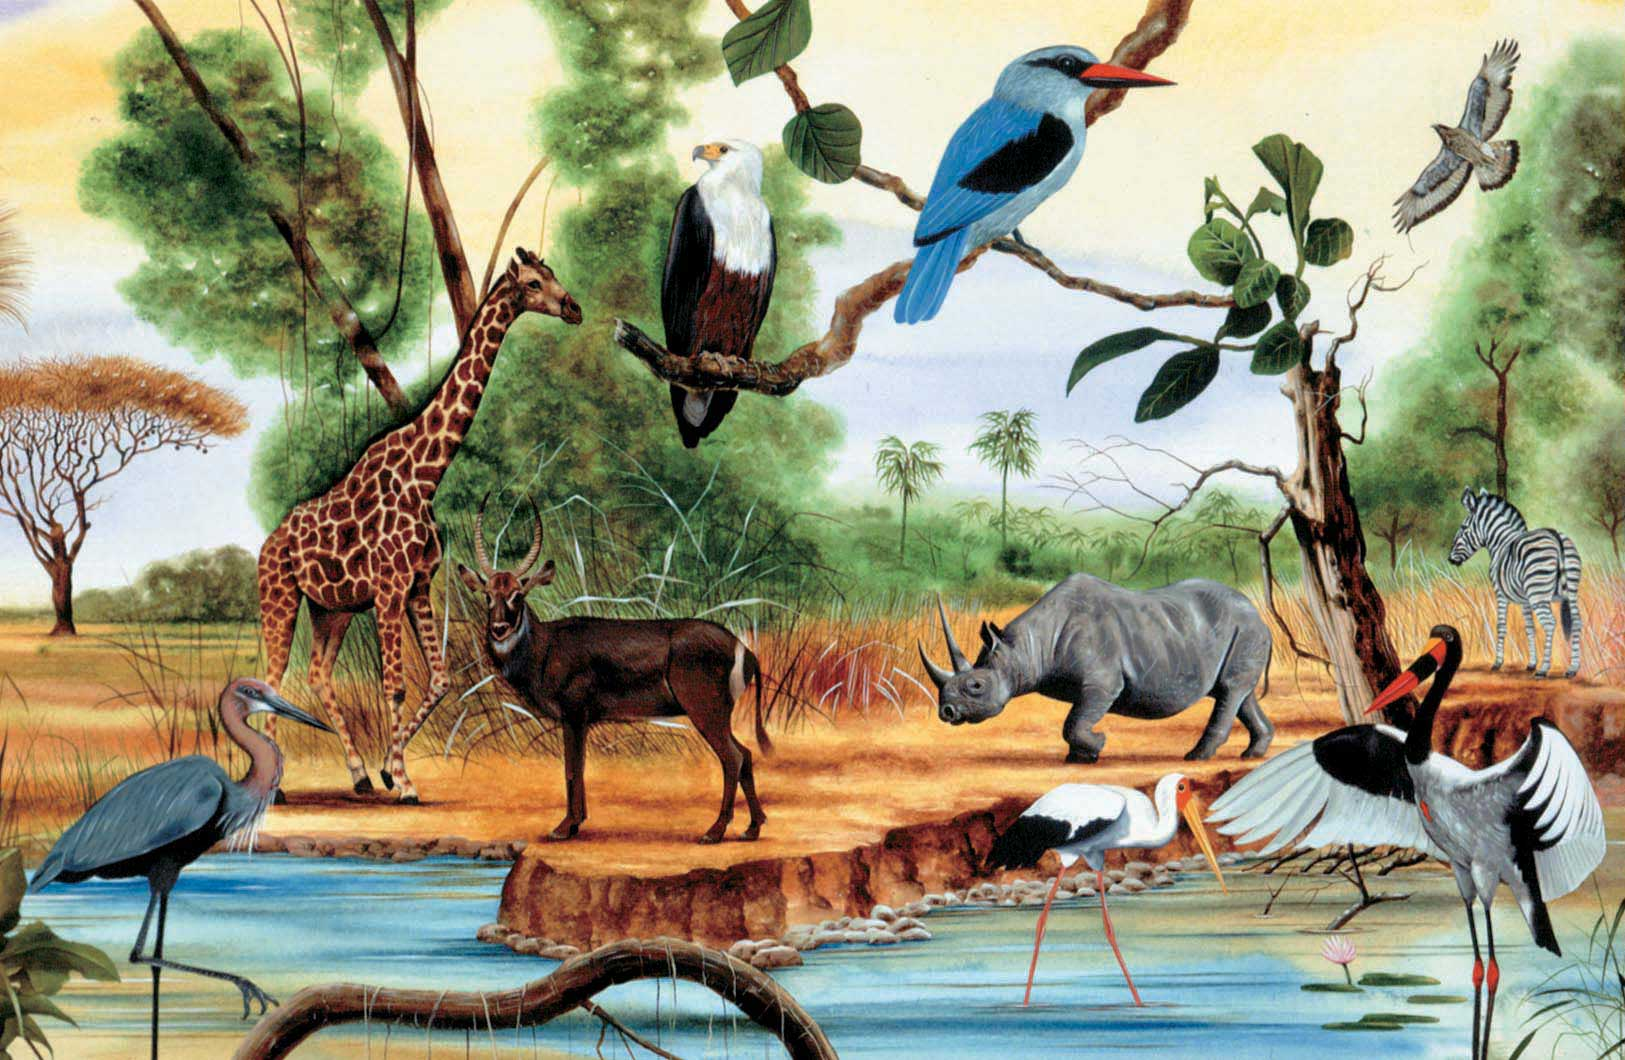 illustration-realistic-animals-african-animal-scene